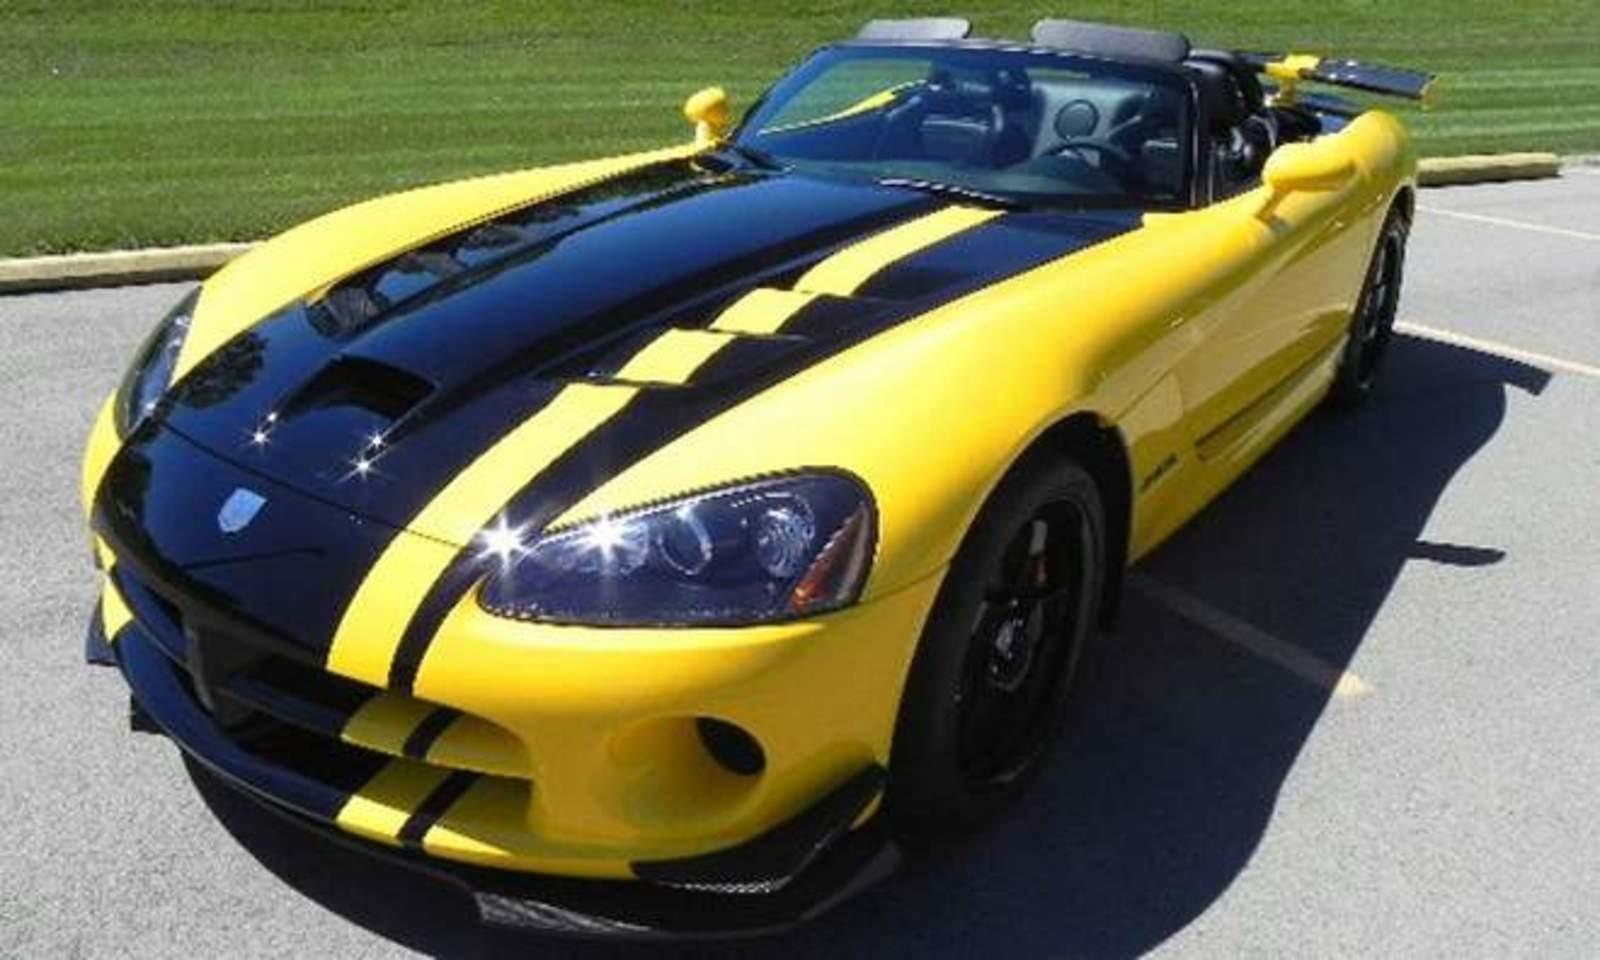 Dodge Viper News And Reviews Top Speed 2010 8 7 Rc Drift Real Circuit Youtube Srt10 Convertible Acr Woodhouse